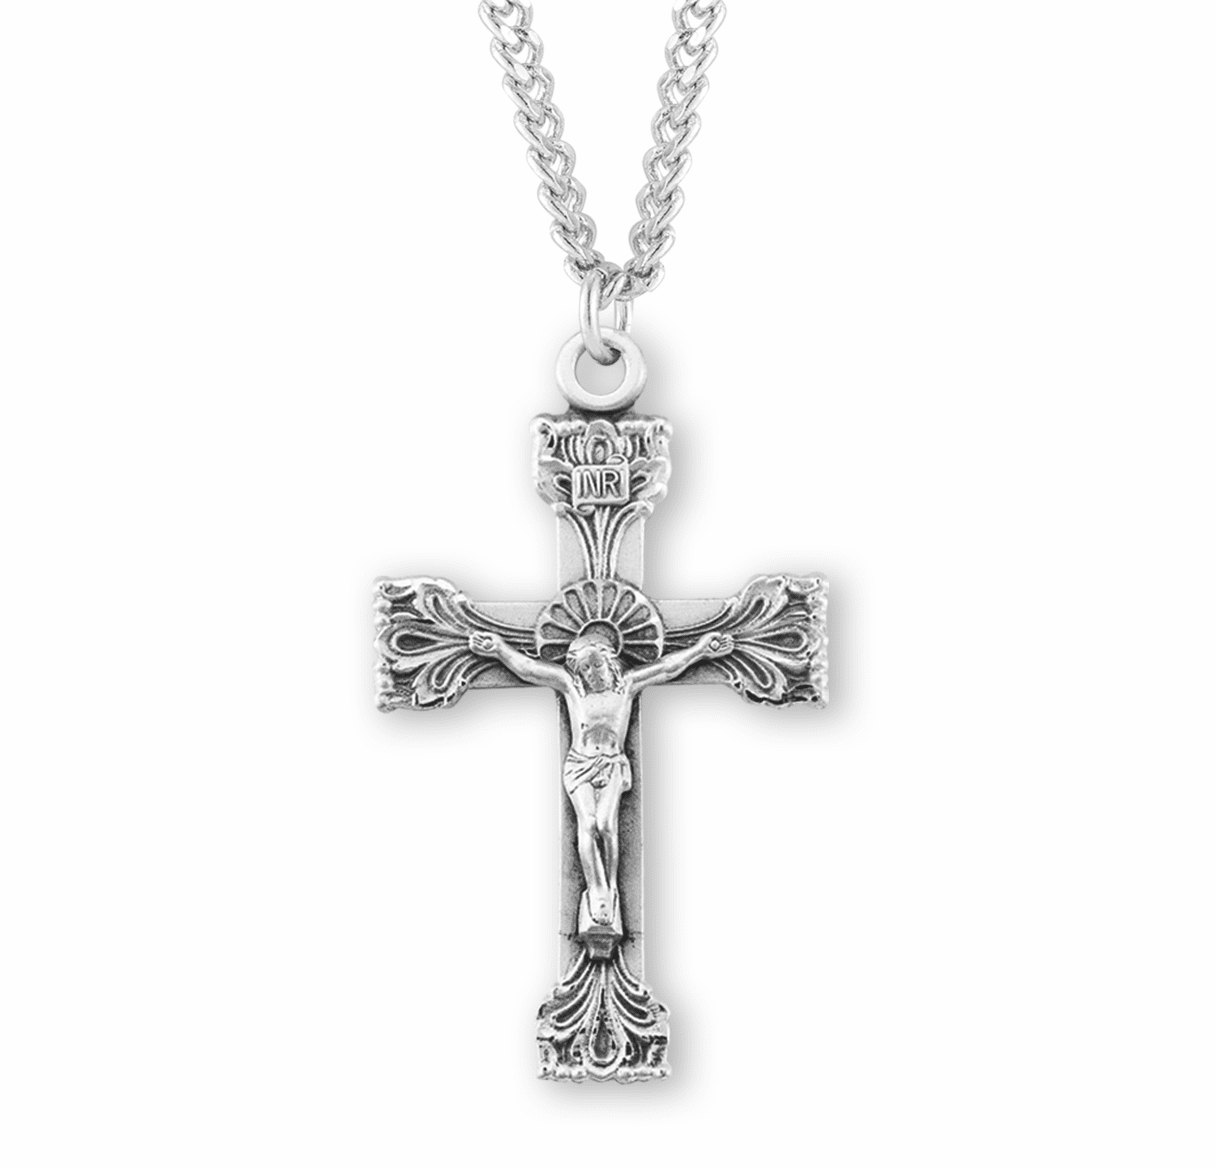 Fancy Halo with Ornate Tip Sterling Silver Crucifix Pendant by HMH Religious